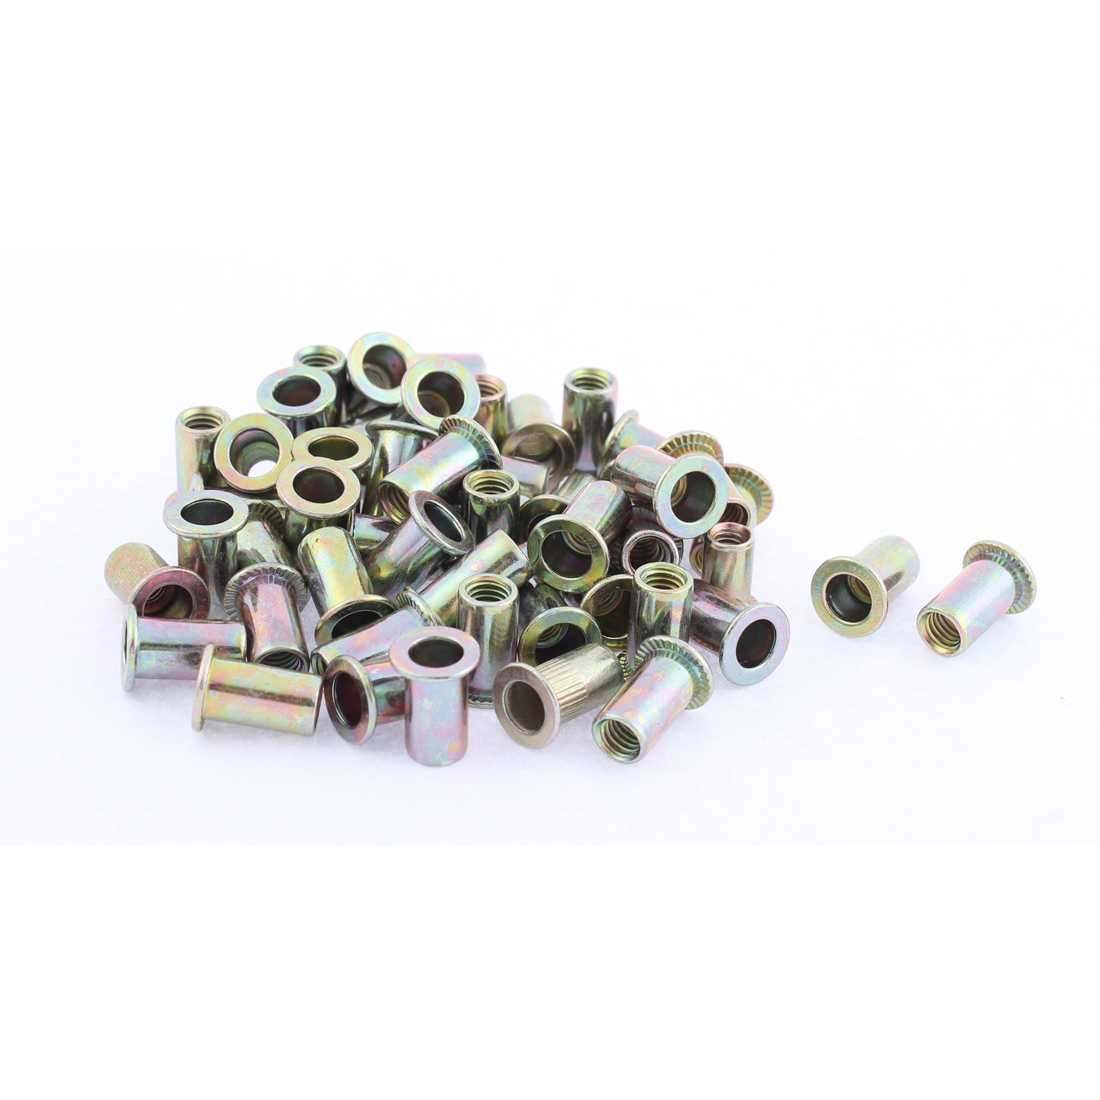 M5 Thread Dia Flat Head Zinc Plated Rivet Blind Nut Nutsert Brass Tone 50pcs